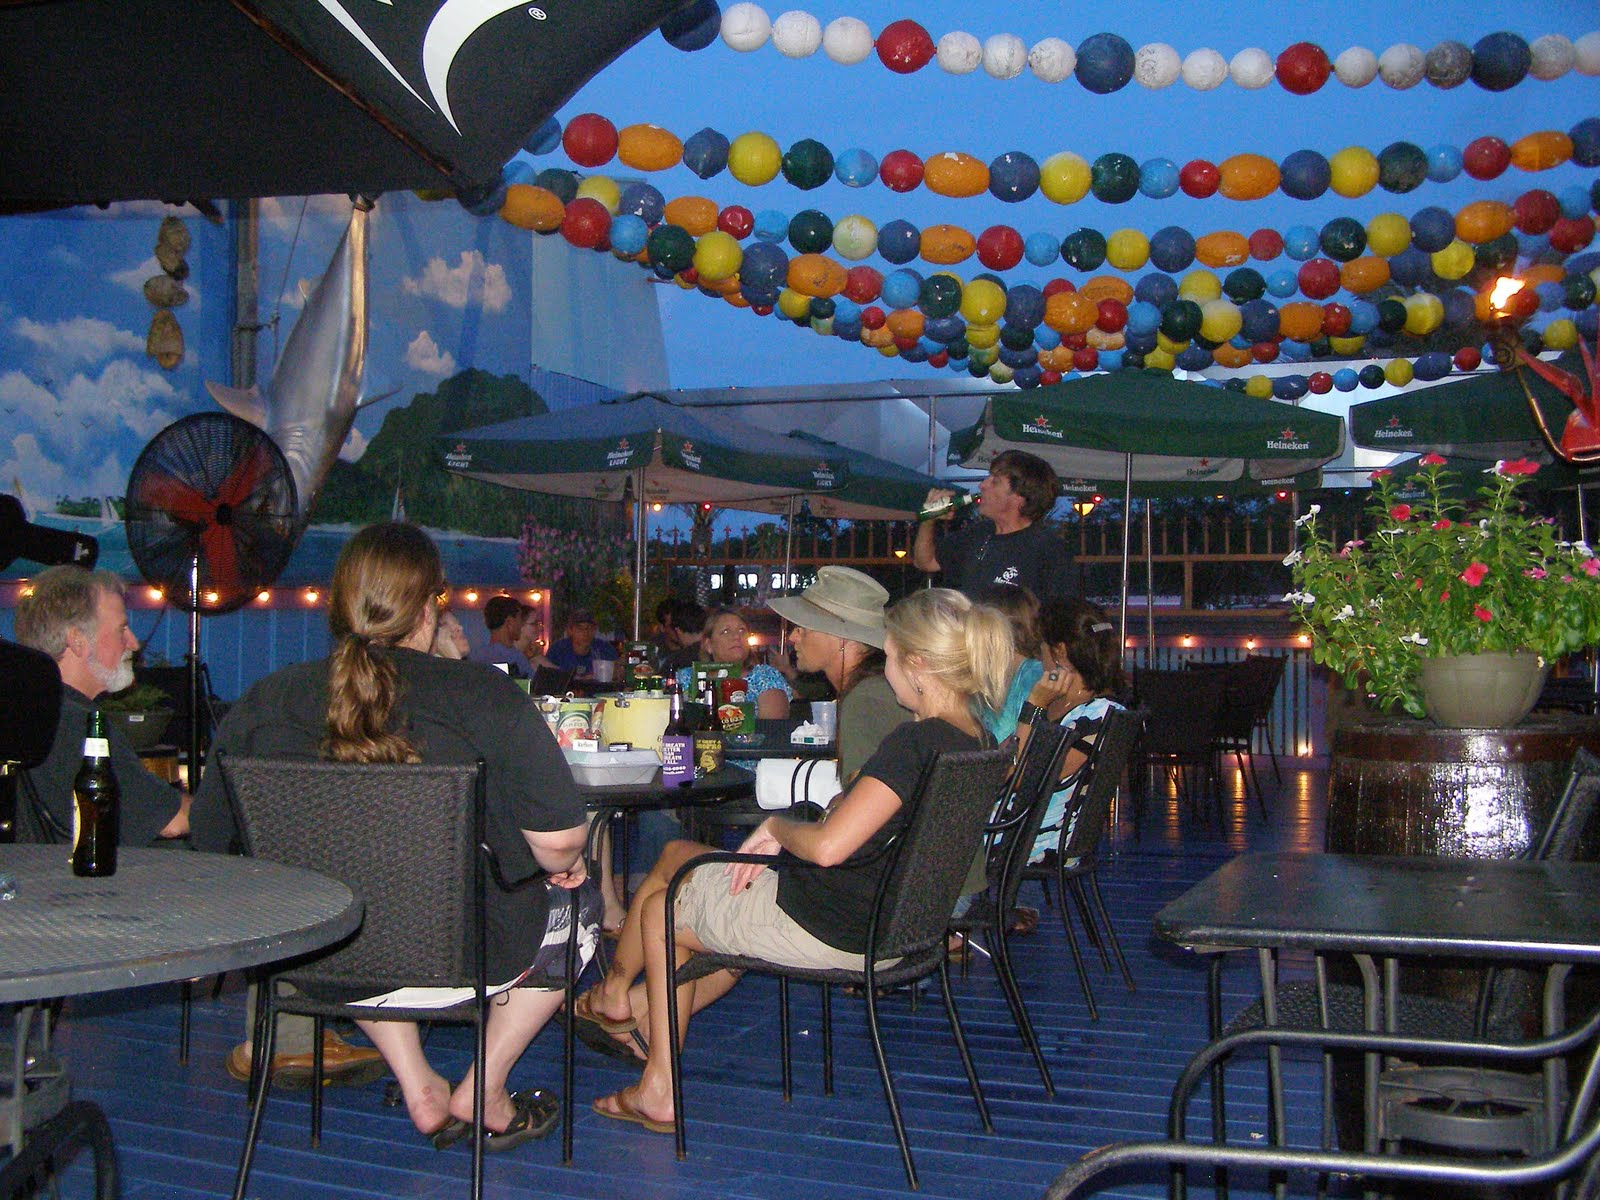 Tampa Streets Mike Tozier At Gaspar s Patio Bar & Grille